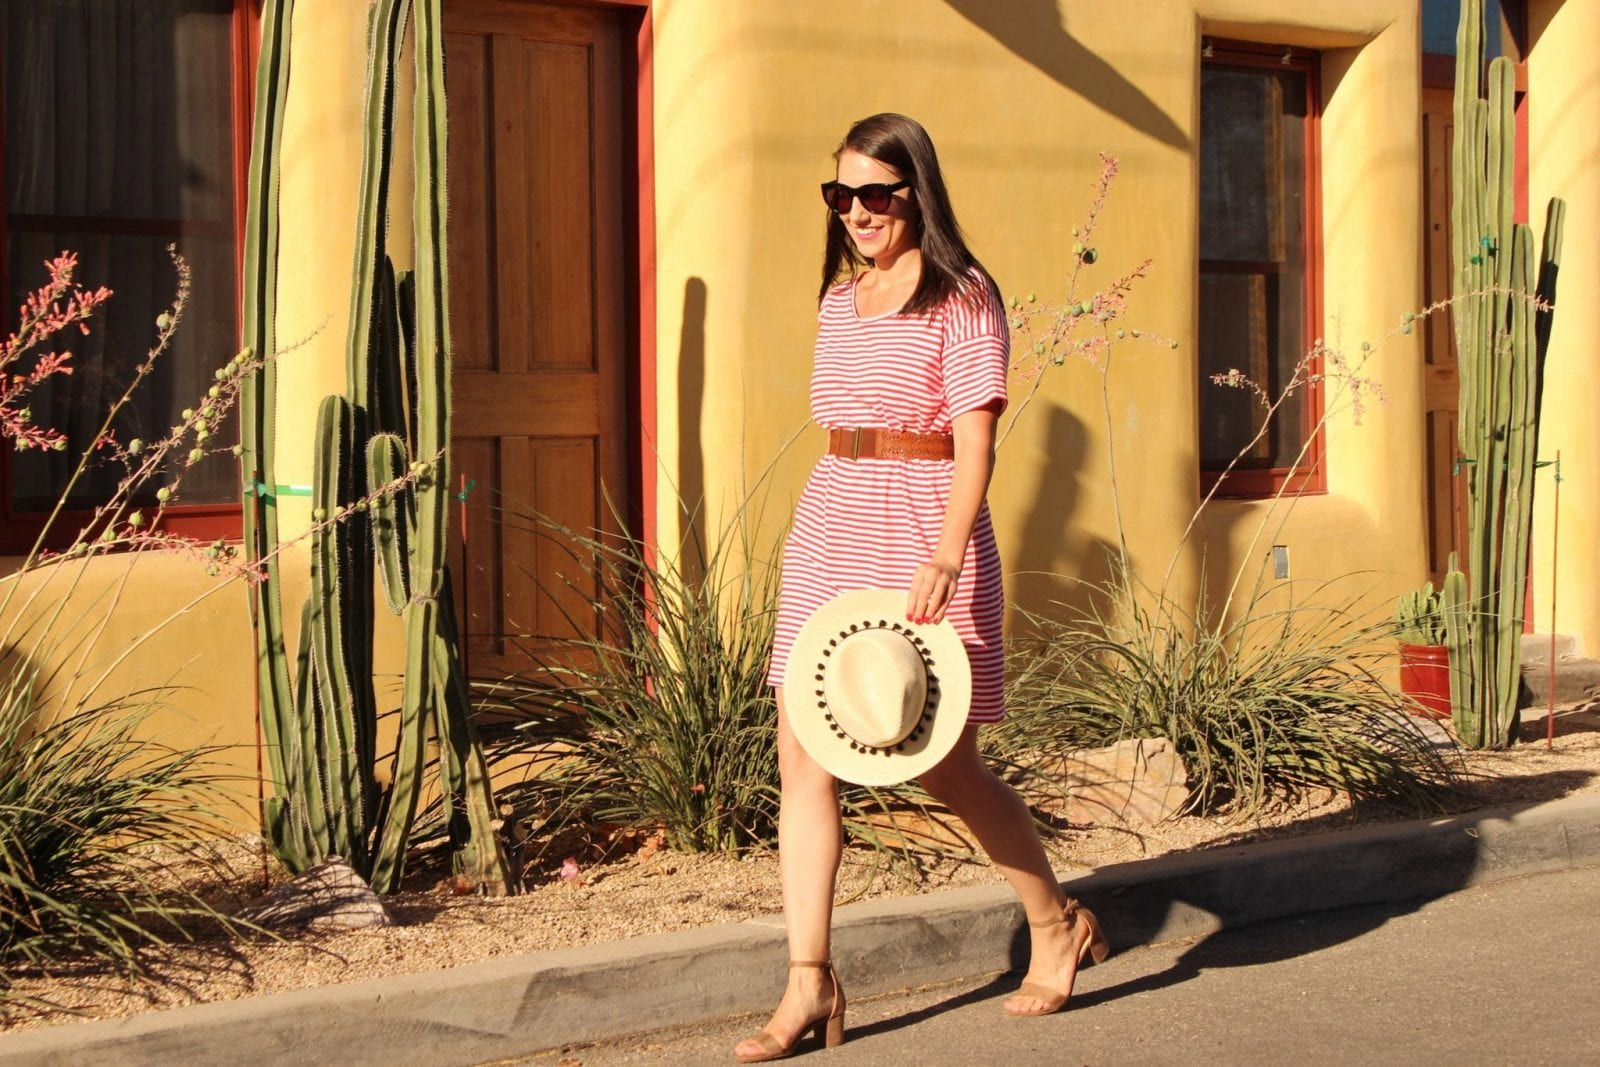 This is a close up of me walking down the street in a red striped dress from Everlane.